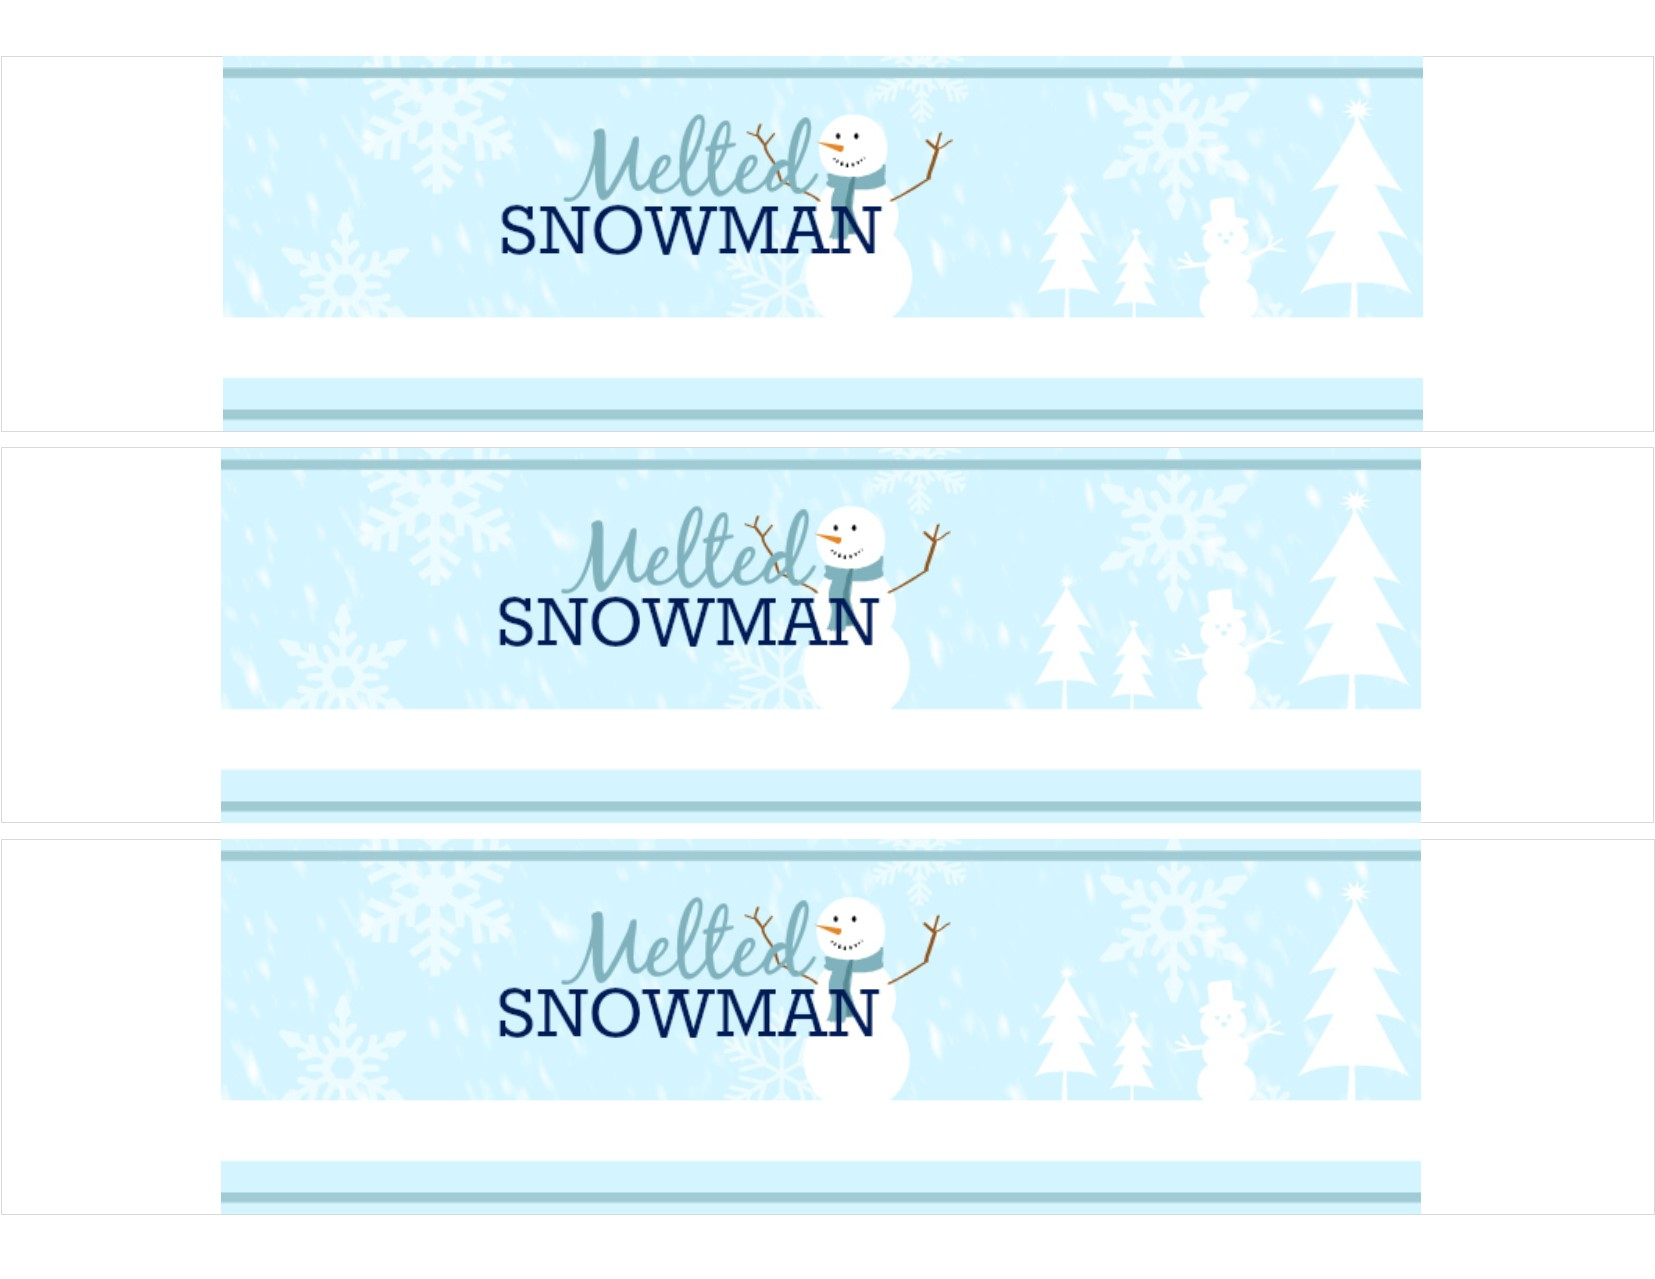 Free Printable: Melted Snowman Water Bottle Labels - Shesaved® - Free Printable Water Bottle Labels